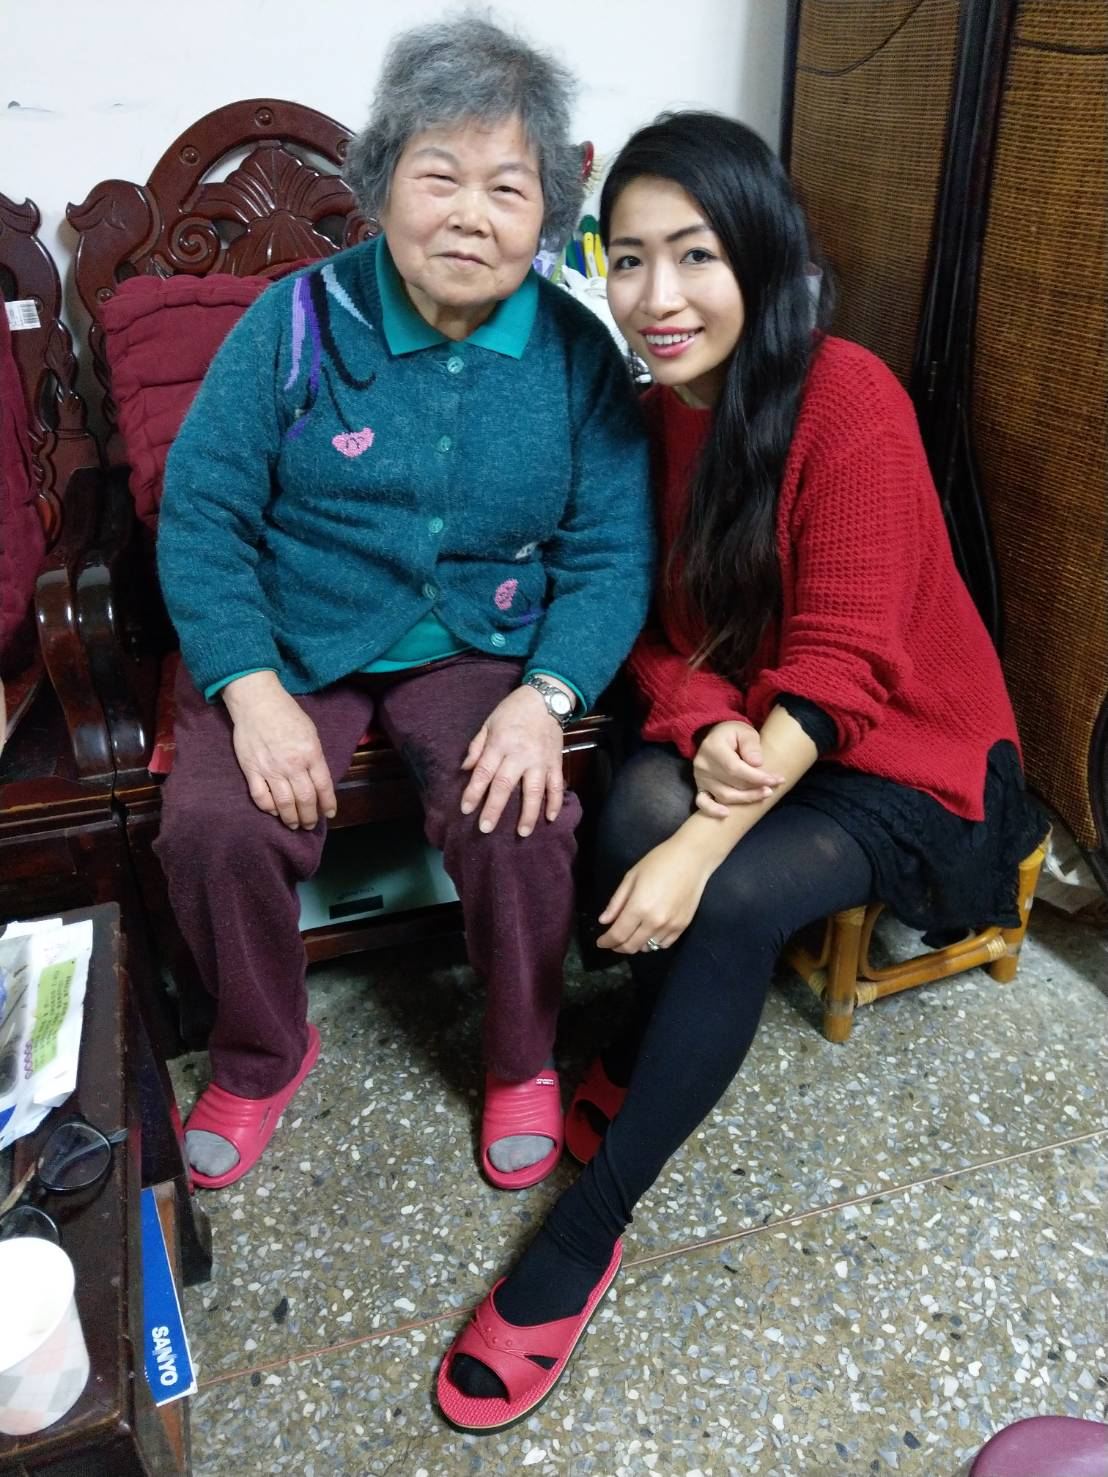 Me and PuoPuo (nanny)